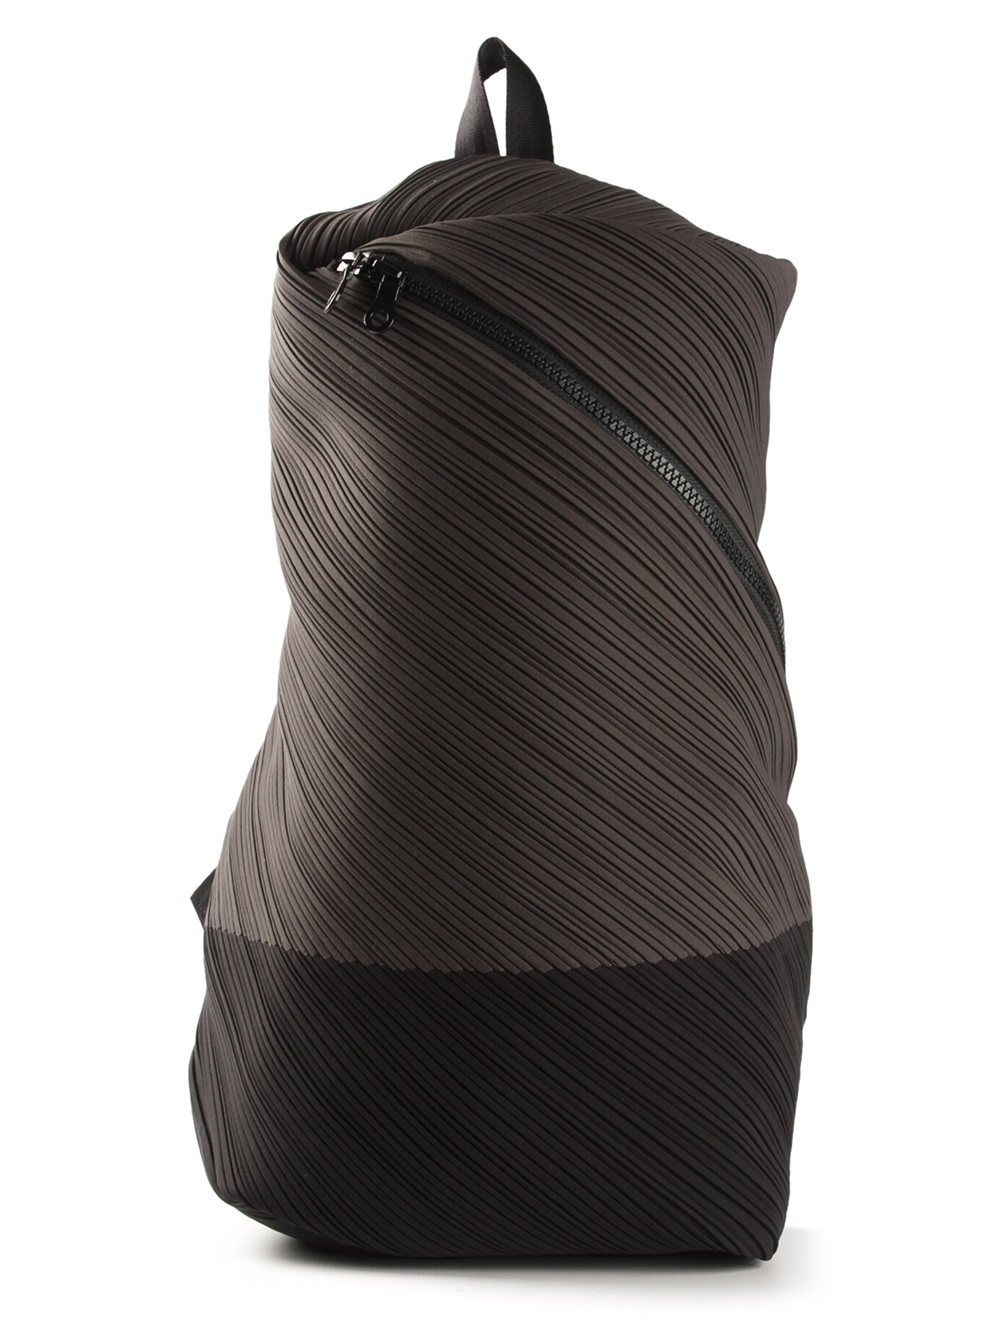 Lyst - Pleats Please Issey Miyake Pleated Backpack in Gray c68c7131bf52f